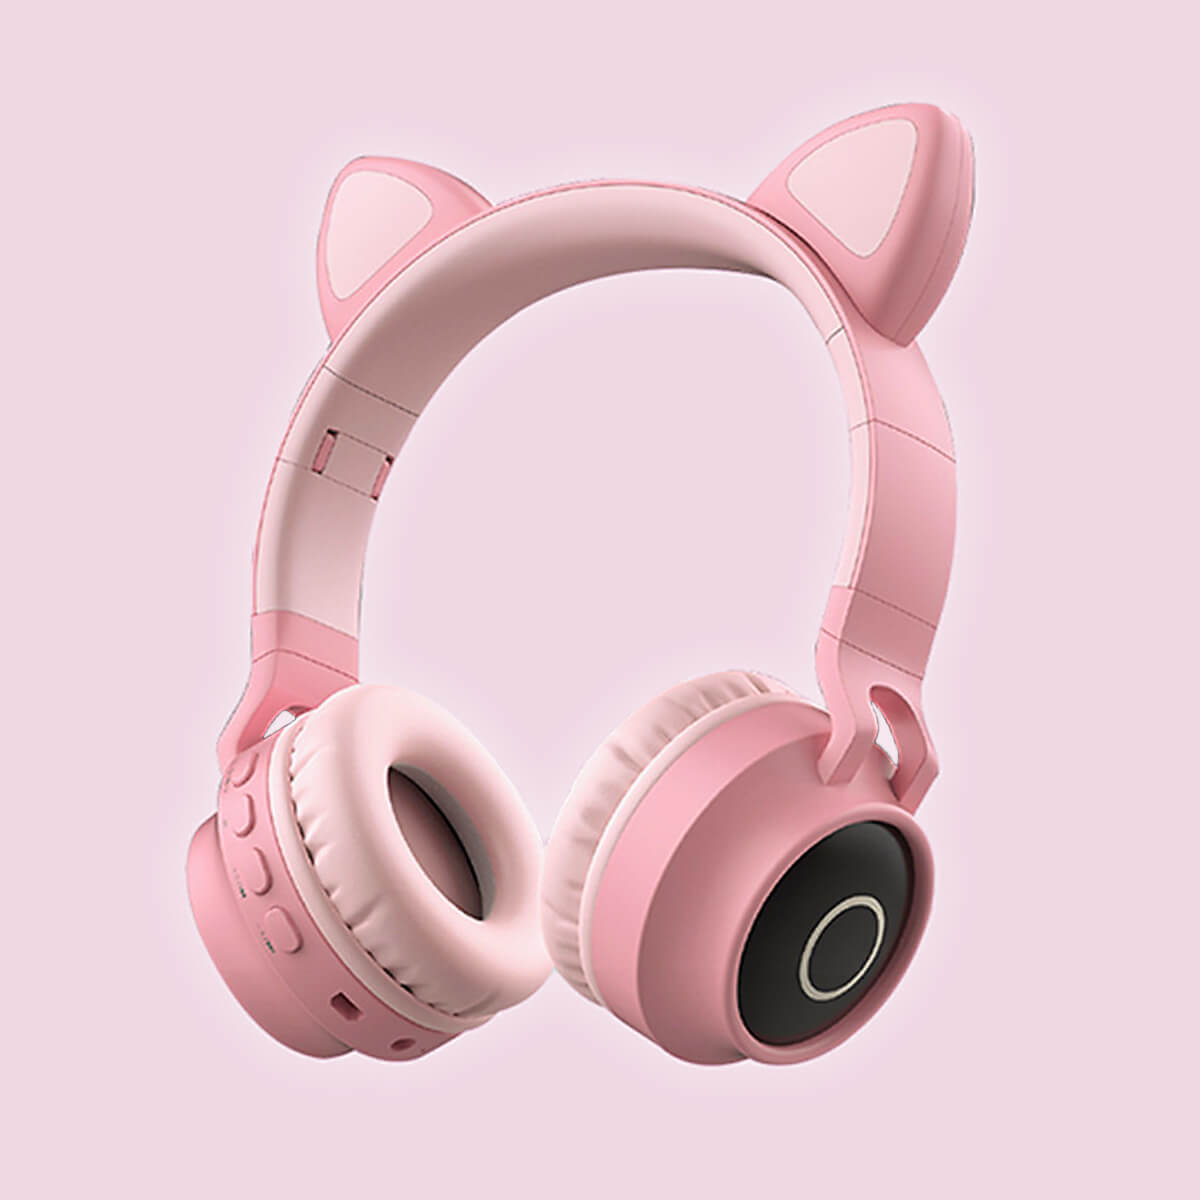 Cat Headphones Kitty Tunes, cute wireless headphone with cat ears - product image all pink earphones